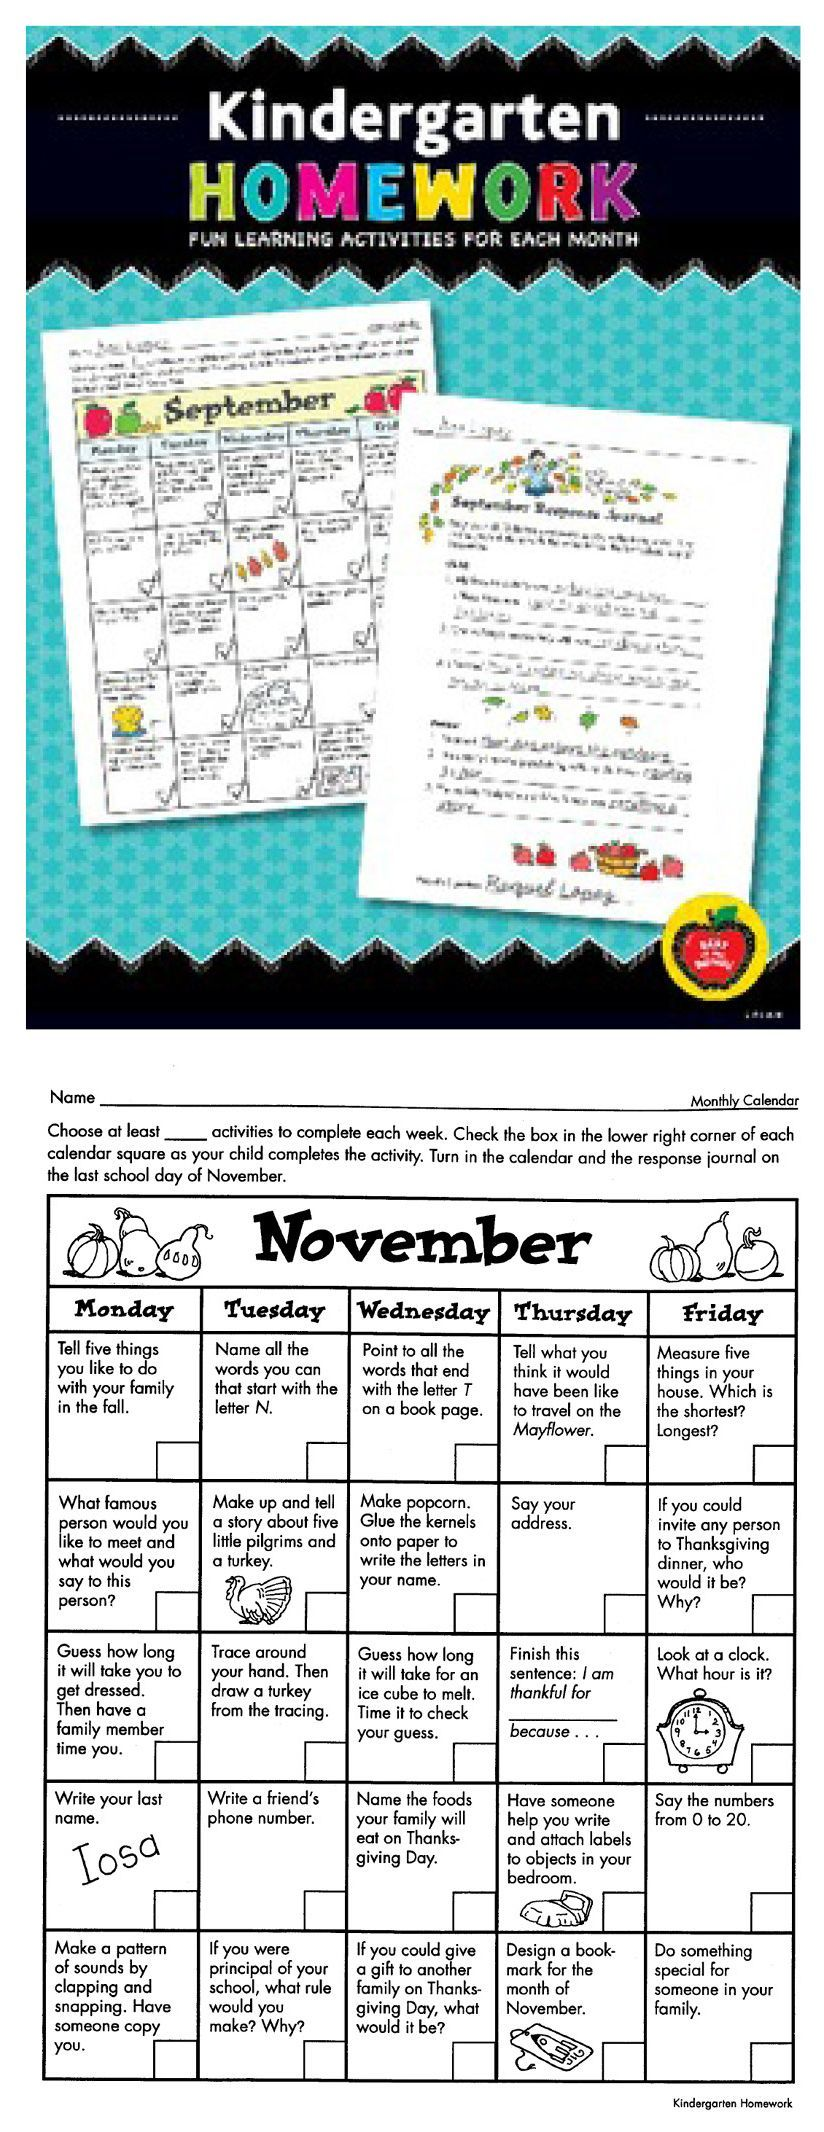 Kindergarten Calendar Activities : Kindergarten homework fun learning activities for each